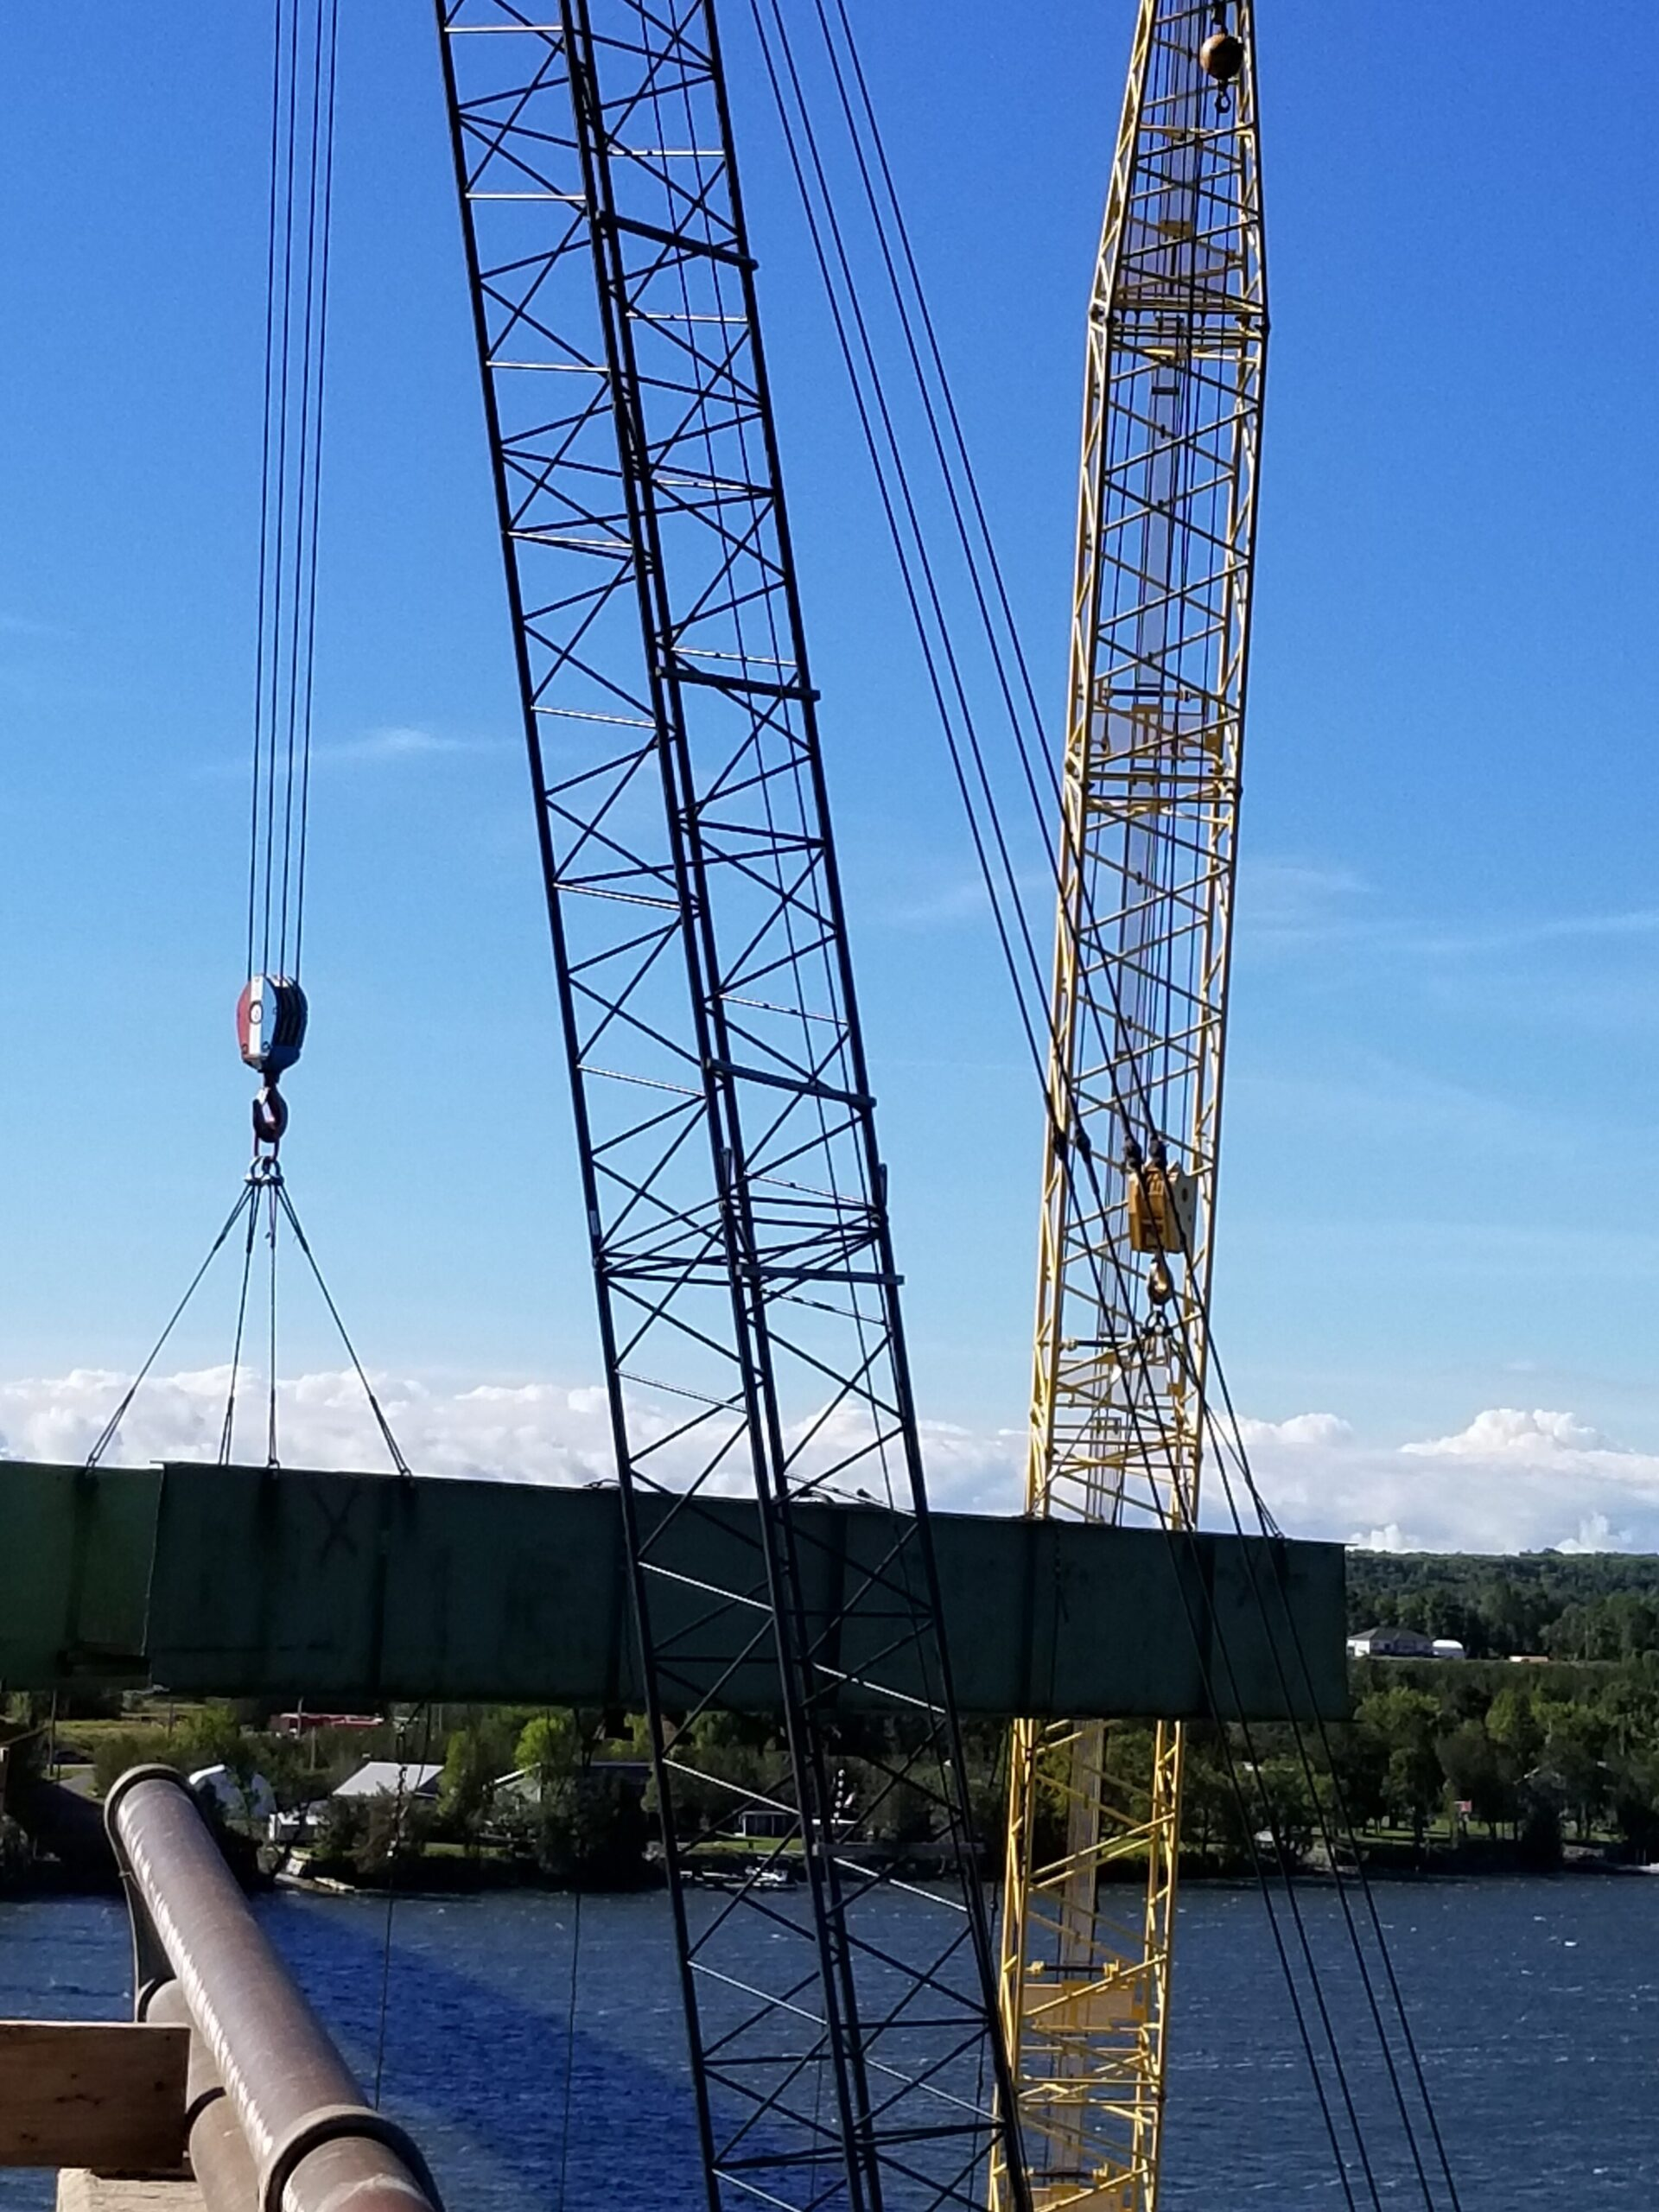 Lowering the second haunch girder